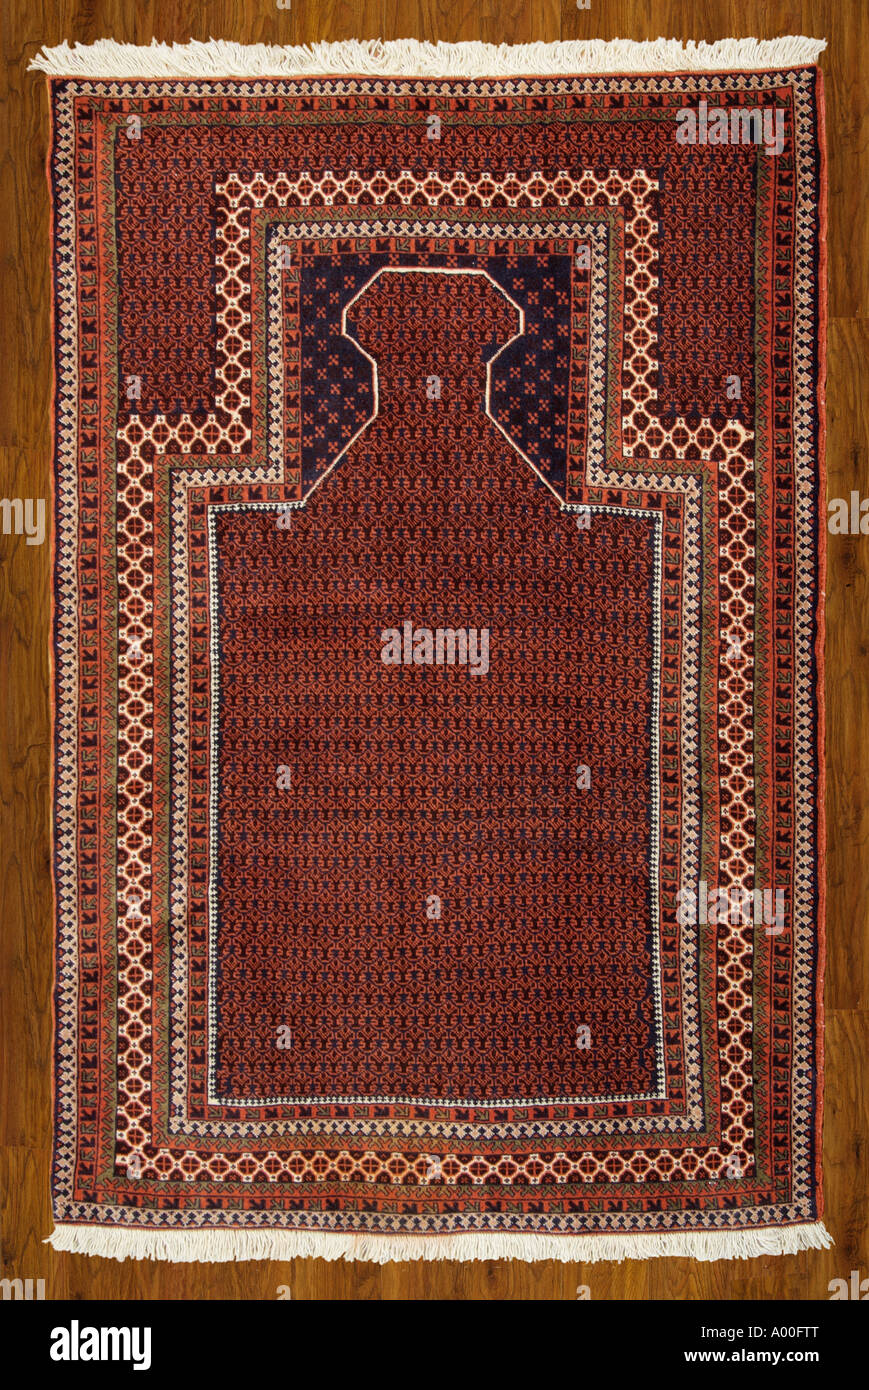 prayer religion Islam Islamic Moslem Carpet rug Iran Iranian Persia Persian near Middle East regional region Asia Stock Photo